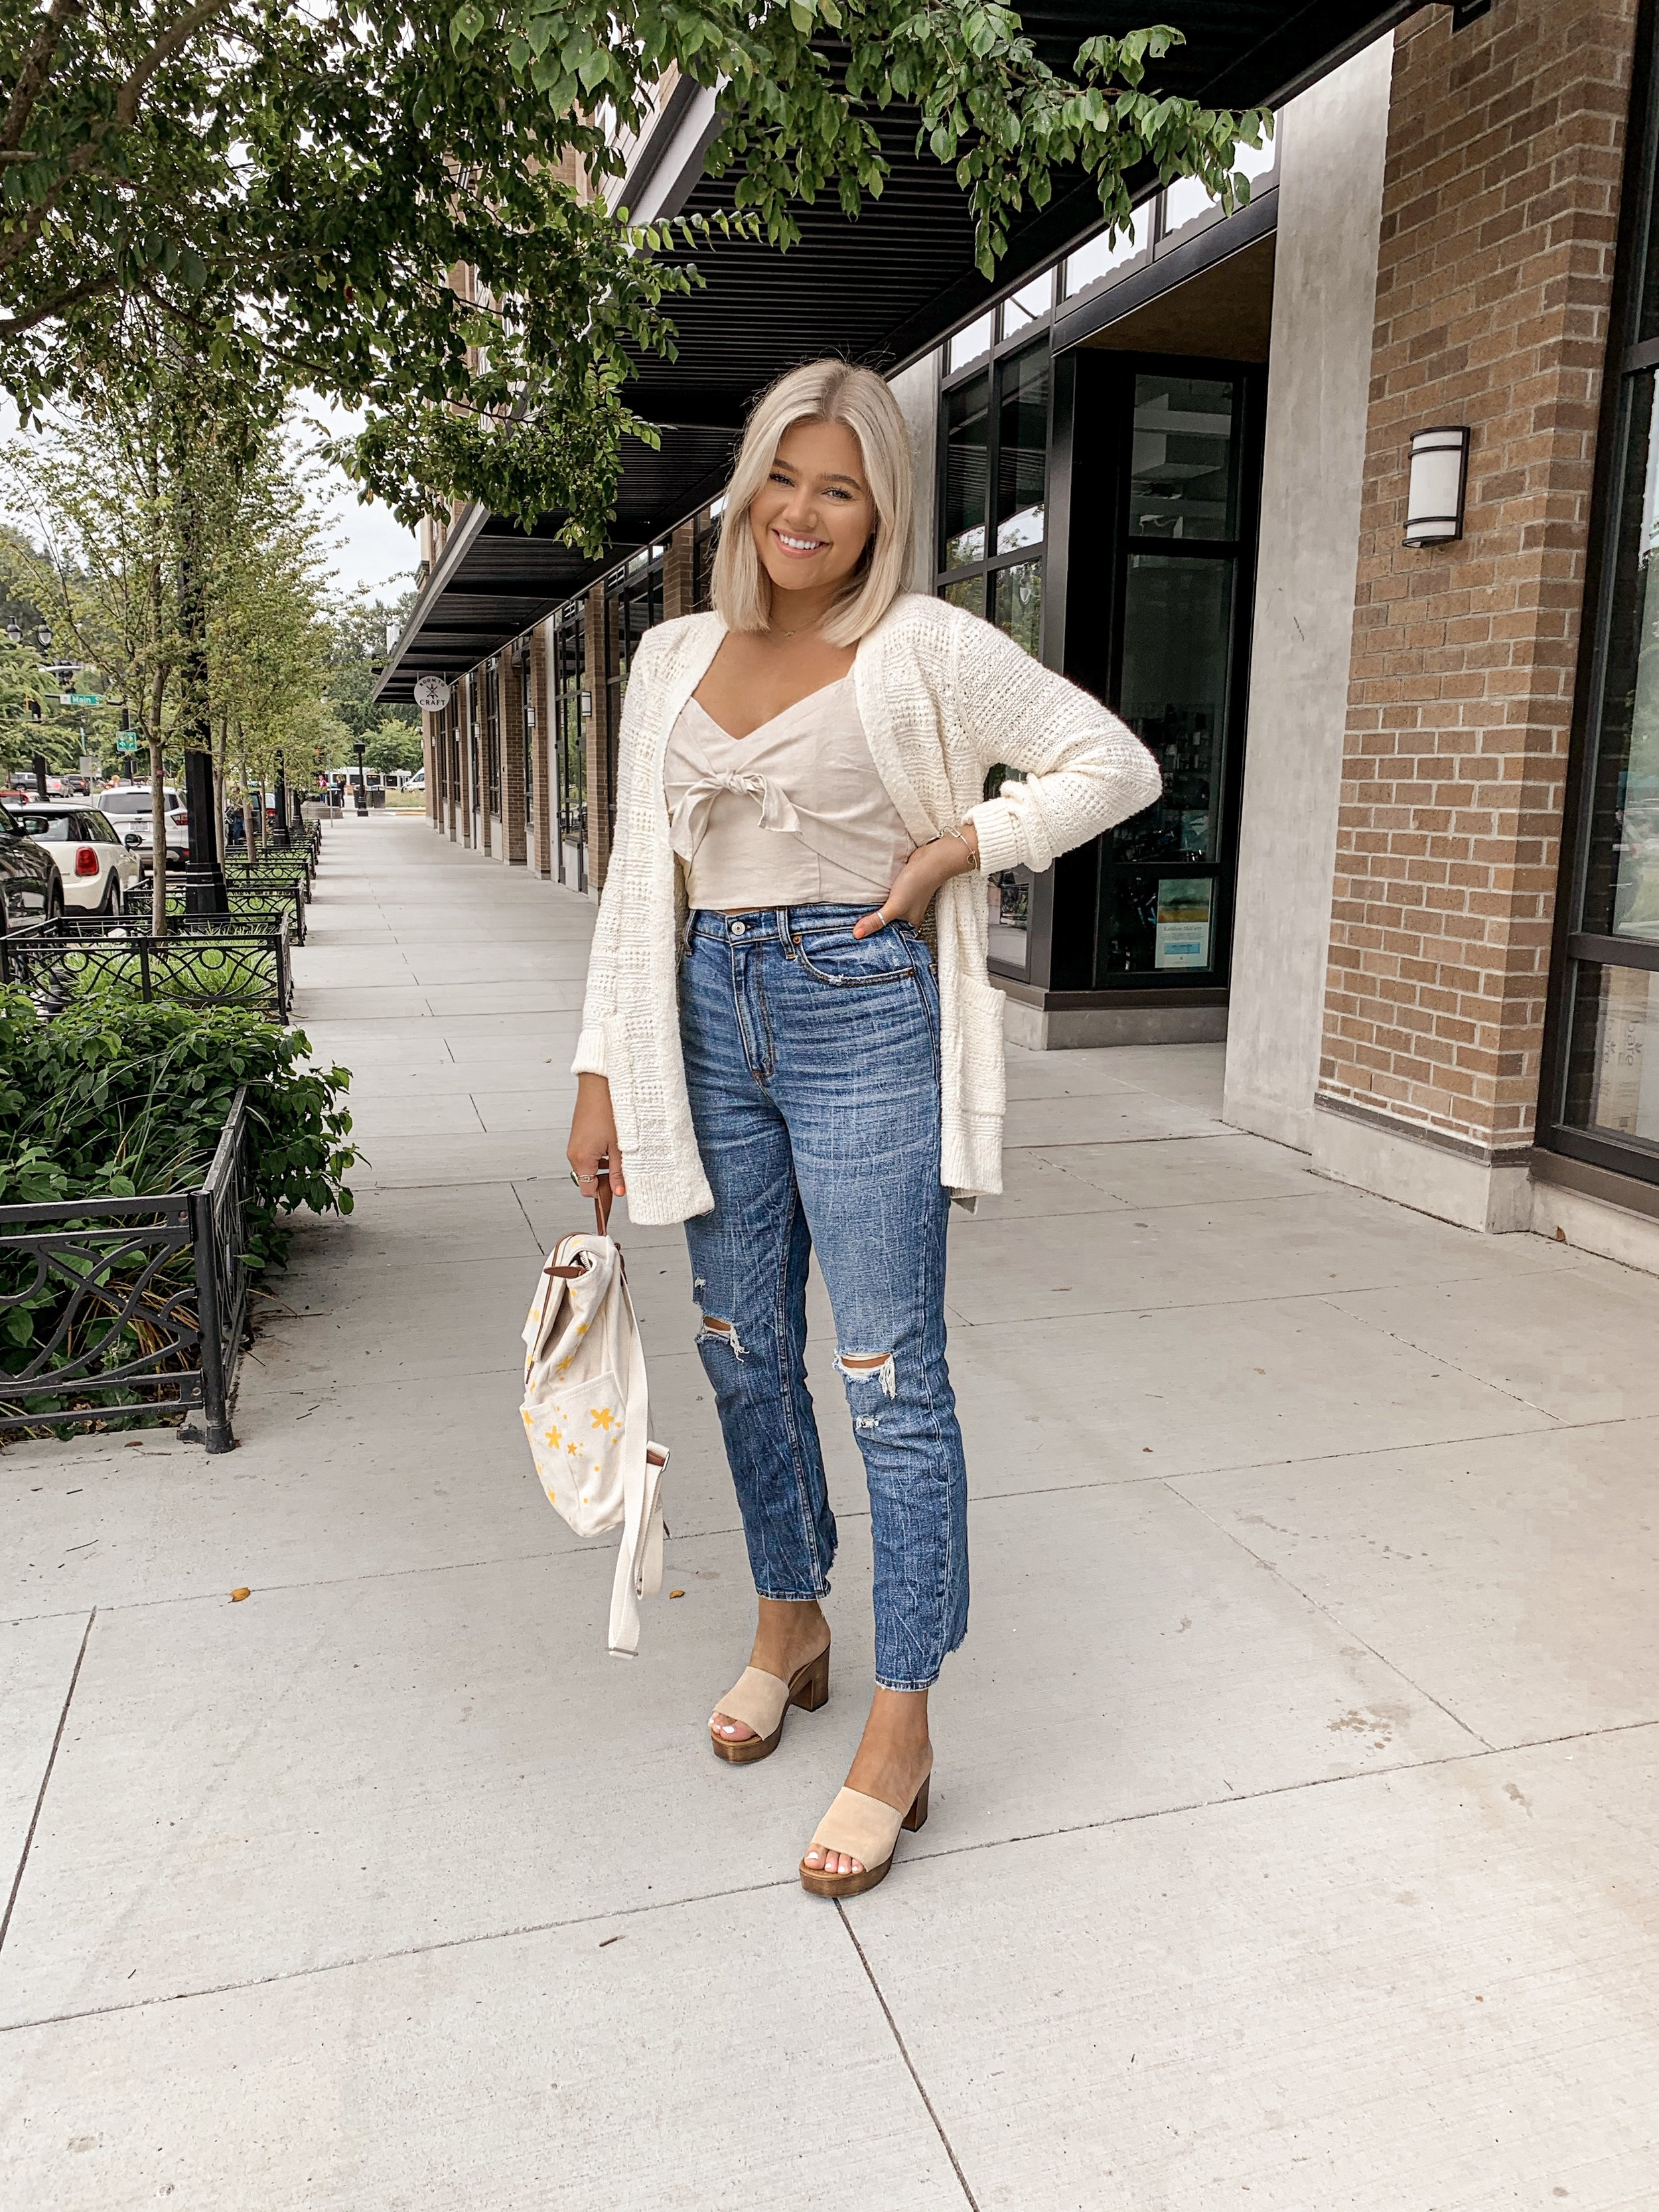 Abercrombie Fall Outfit + DIY Backpack Painting  - bresheppard.com.JPG